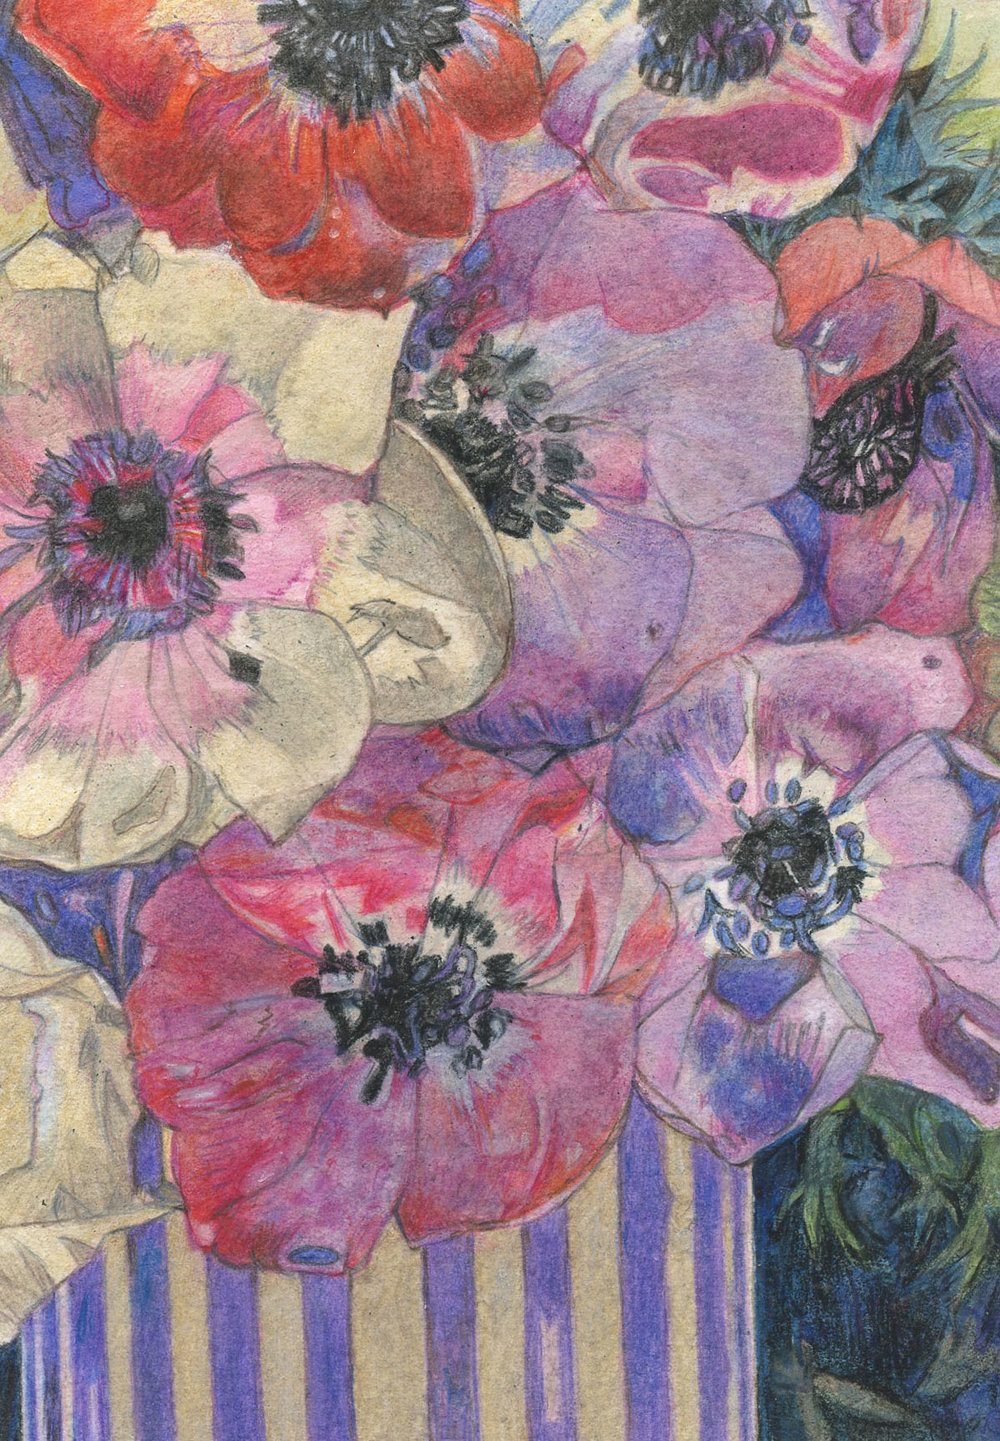 Janet Archer - Anemones (After Charles Rennie Mackintosh).jpg